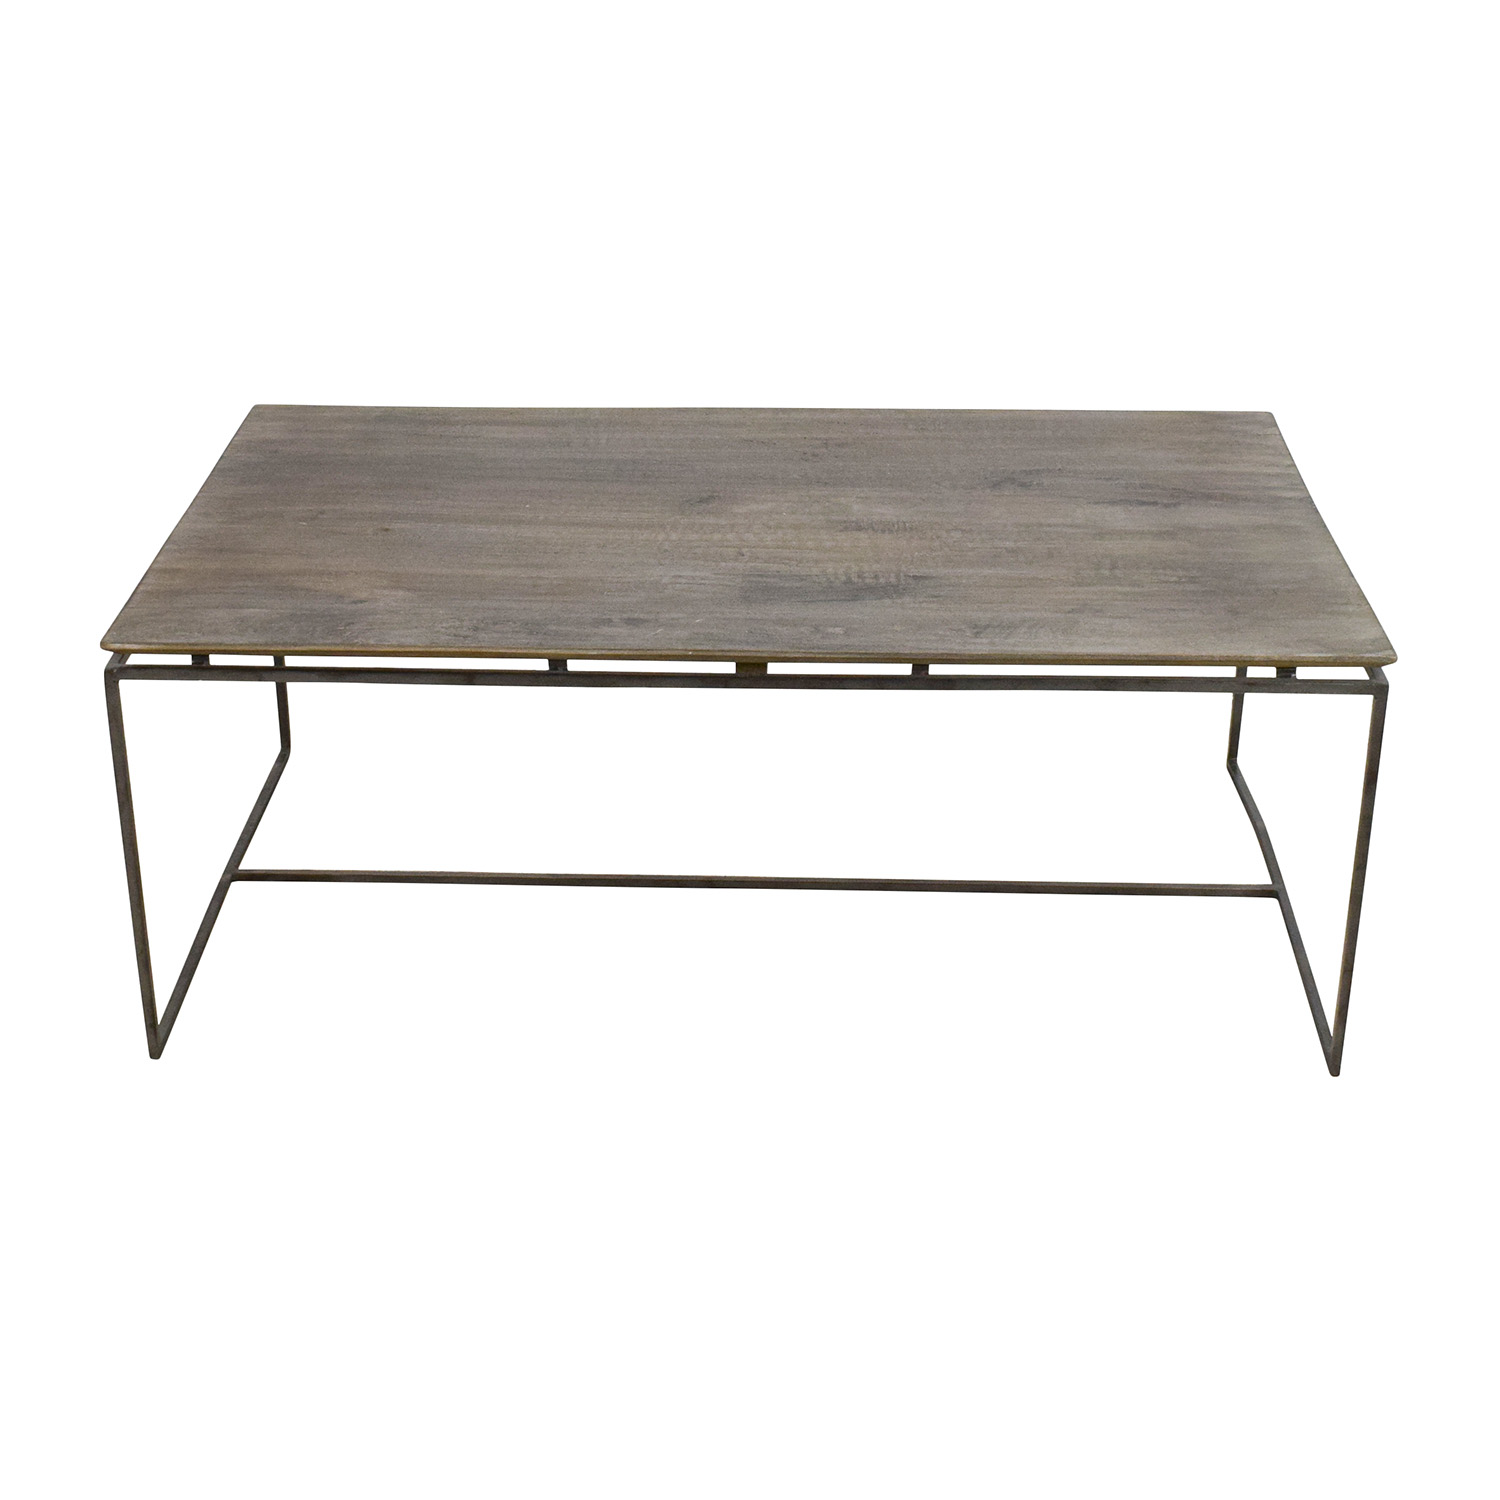 Iron Coffee Tables 68 Off Nadeau Nadeau Wood And Iron Coffee Table Tables